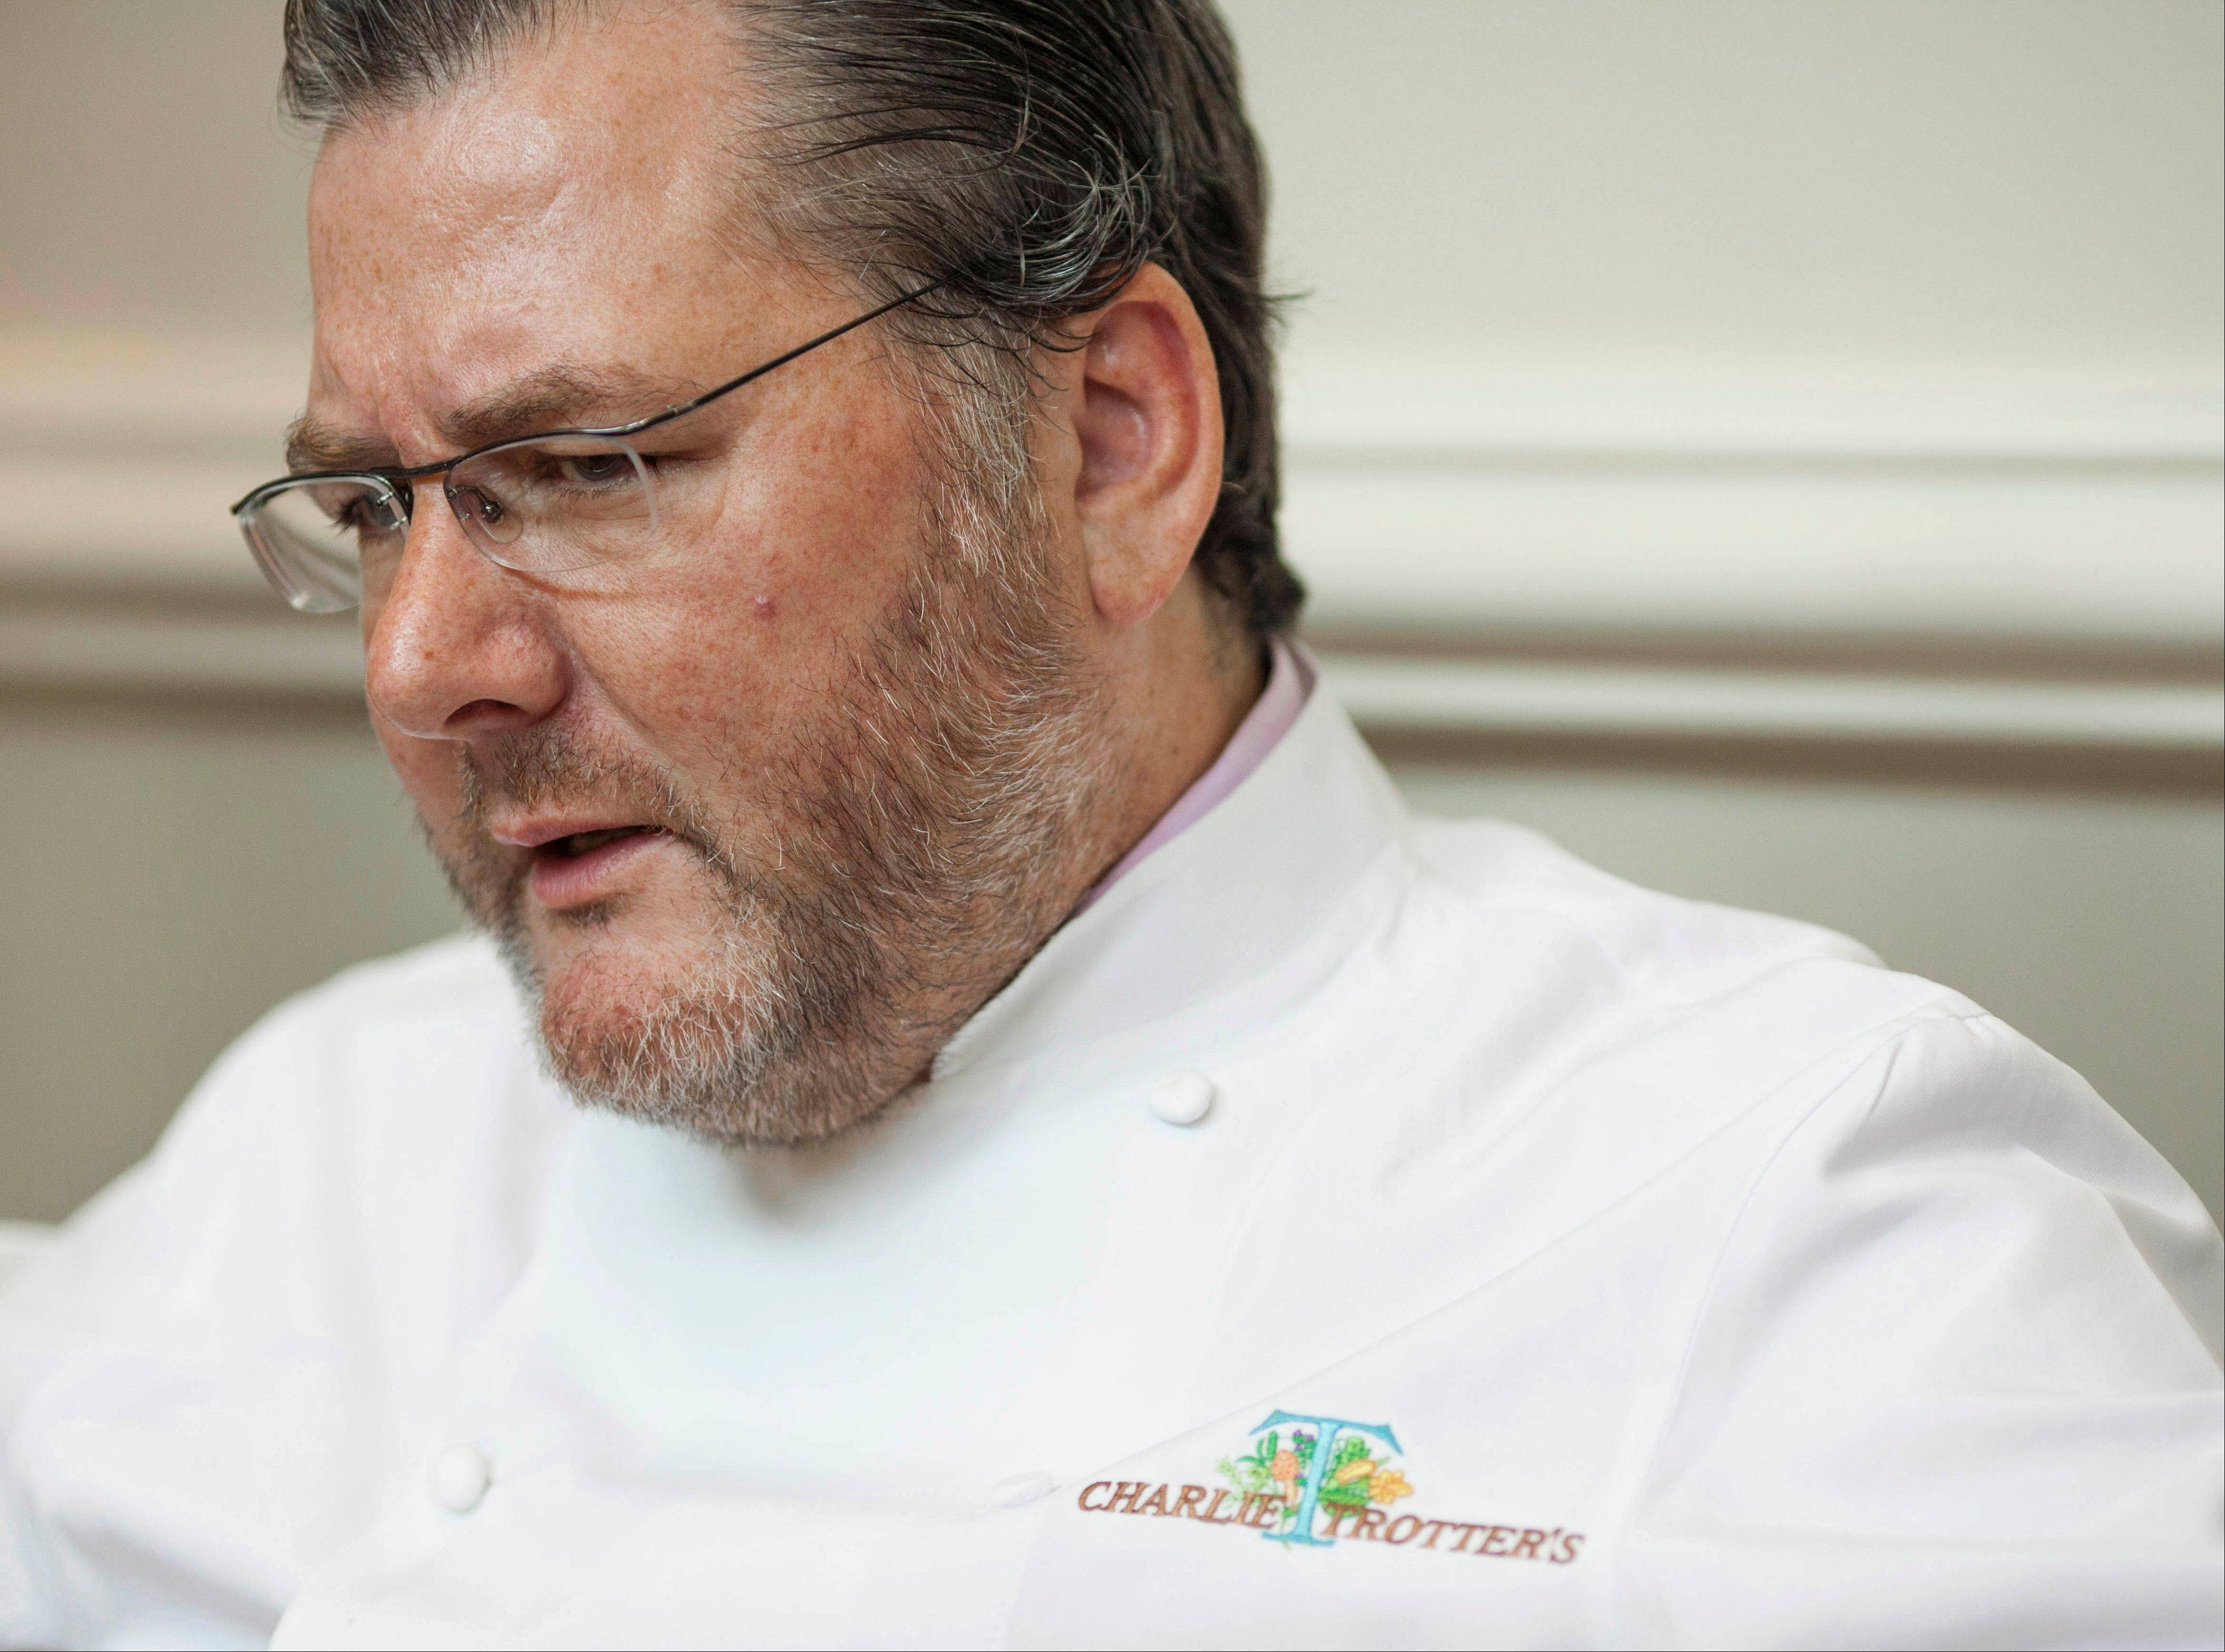 Award-winning chef Charlie Trotter died Tuesday at age 54.